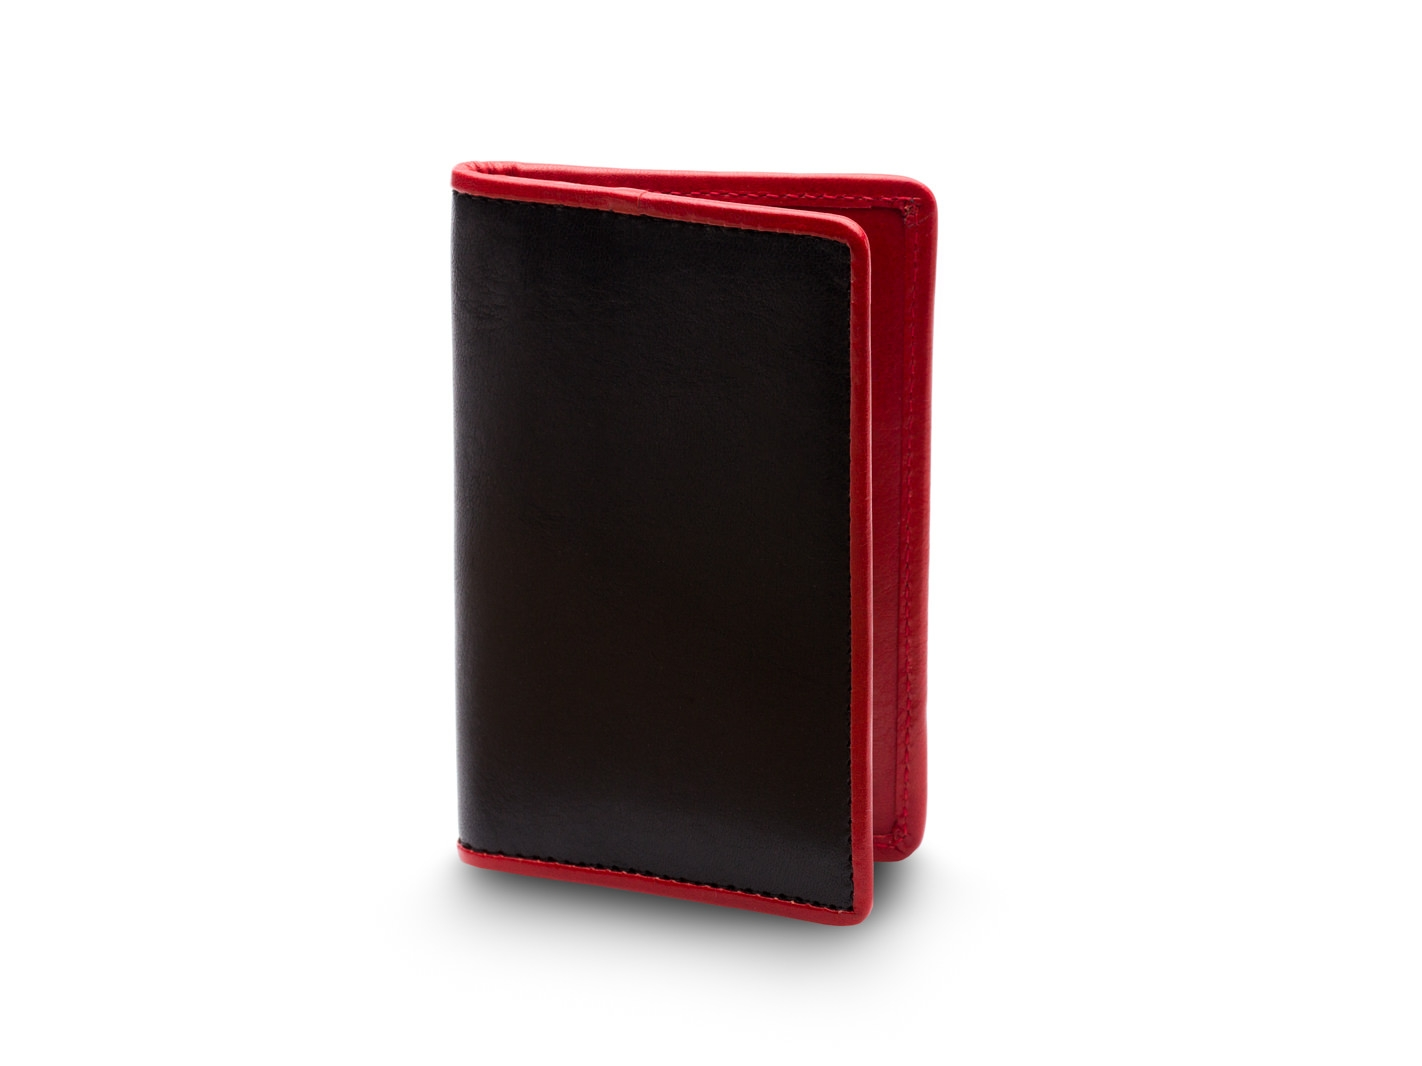 Calling Card Case-271 Black/Red - 271 Black/Red